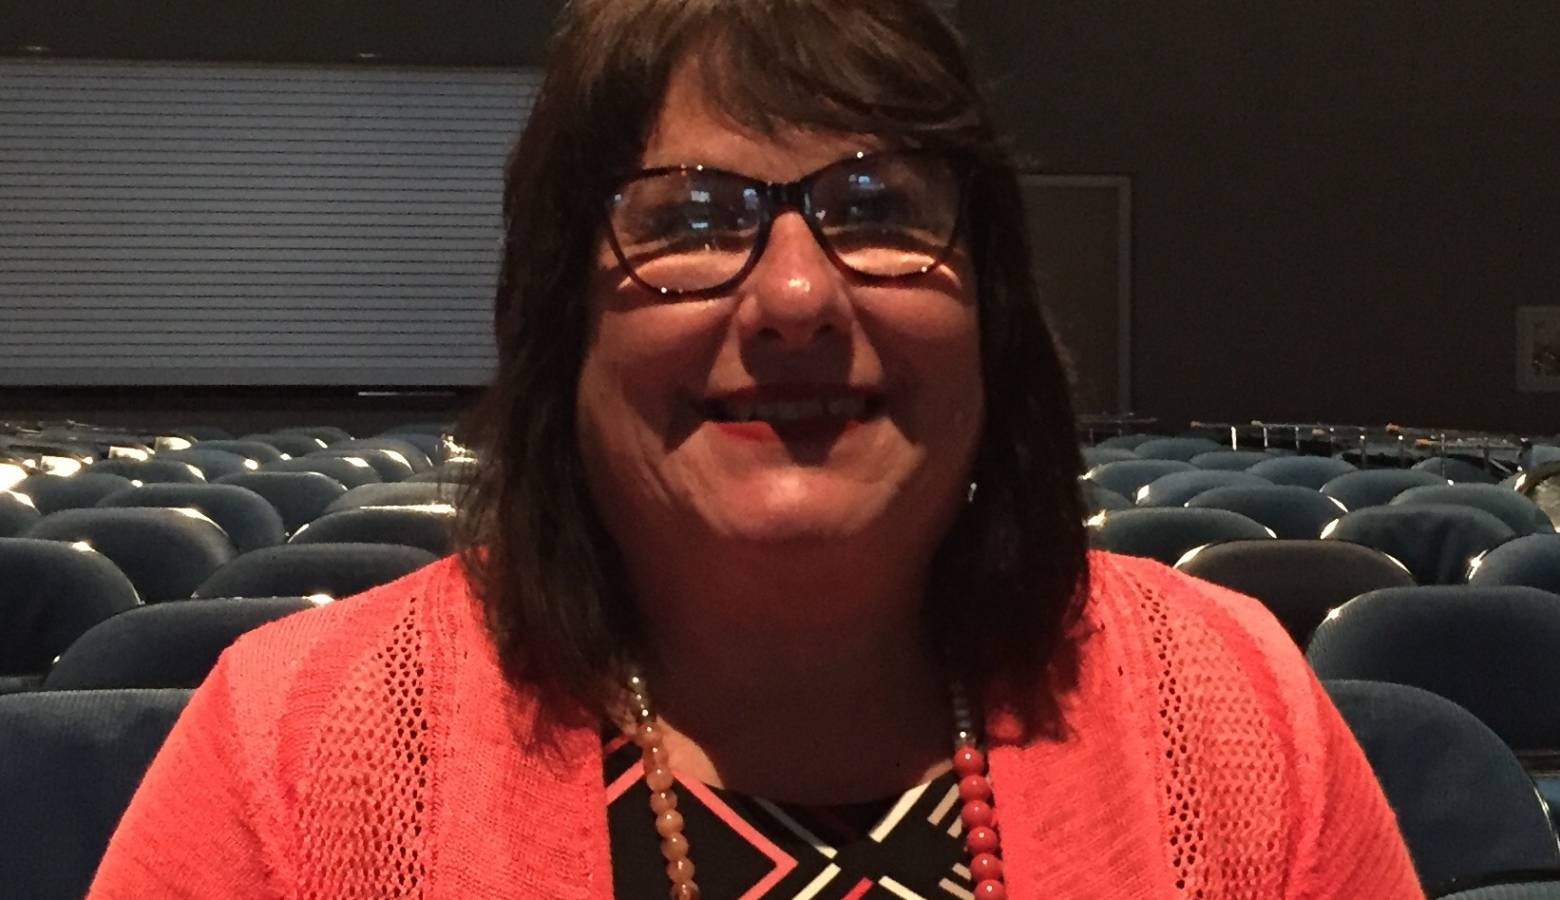 American Association of Nurse Practitioner President Joyce Knestrick attended an annual conference in Indianapolis. (Jill Sheridan IPB News)